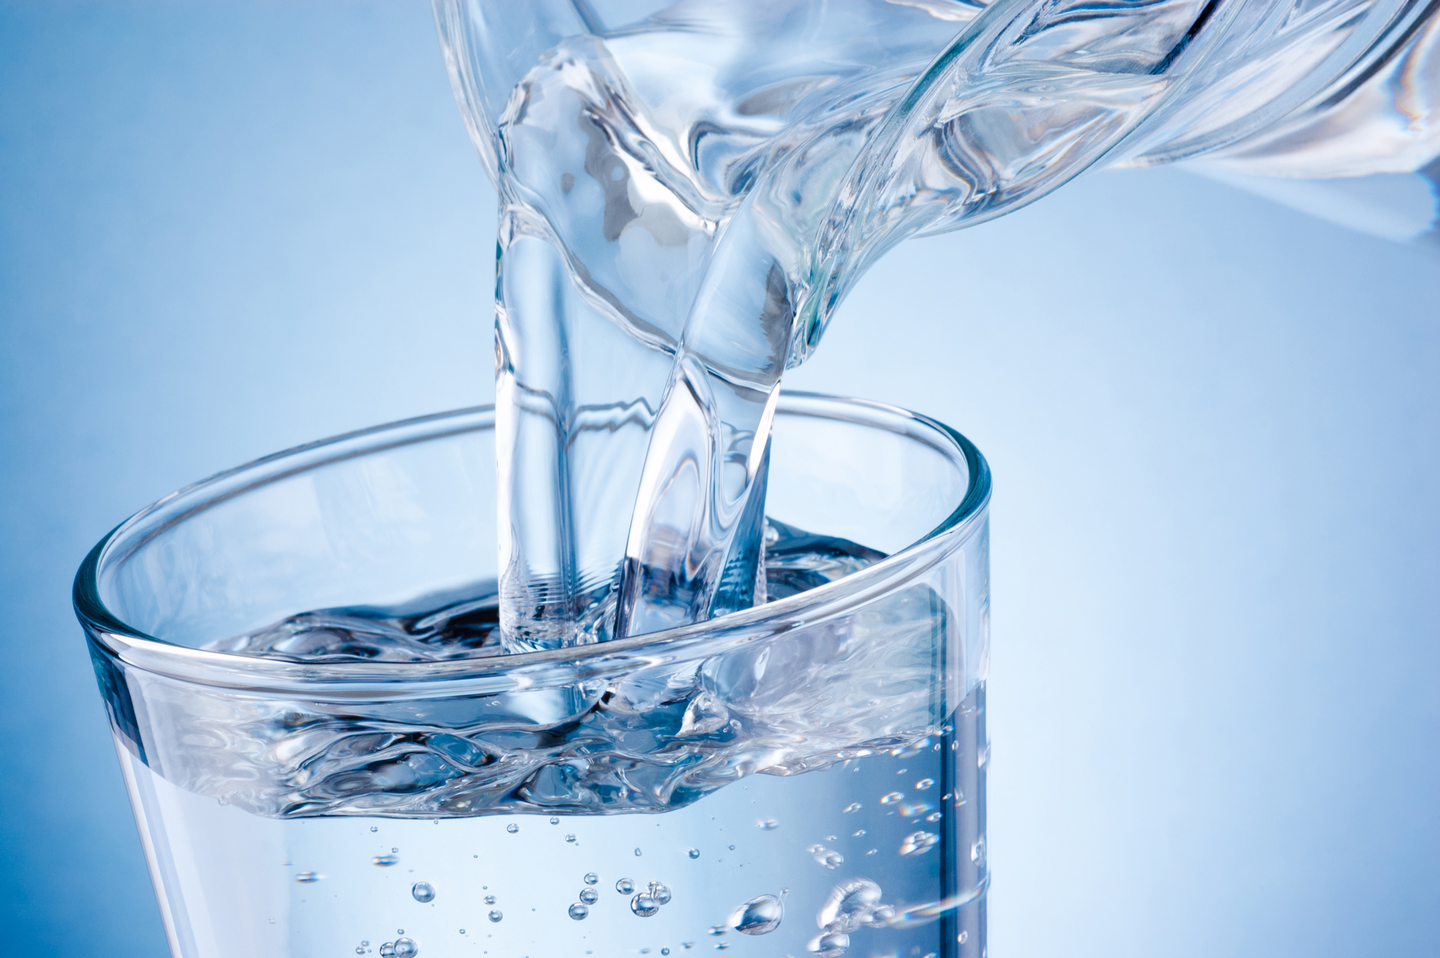 Drinking water facilities that treat surface water typically use a conventional treatment train consisting of coagulation, flocculation, sedimentation and filtration, followed by disinfection.